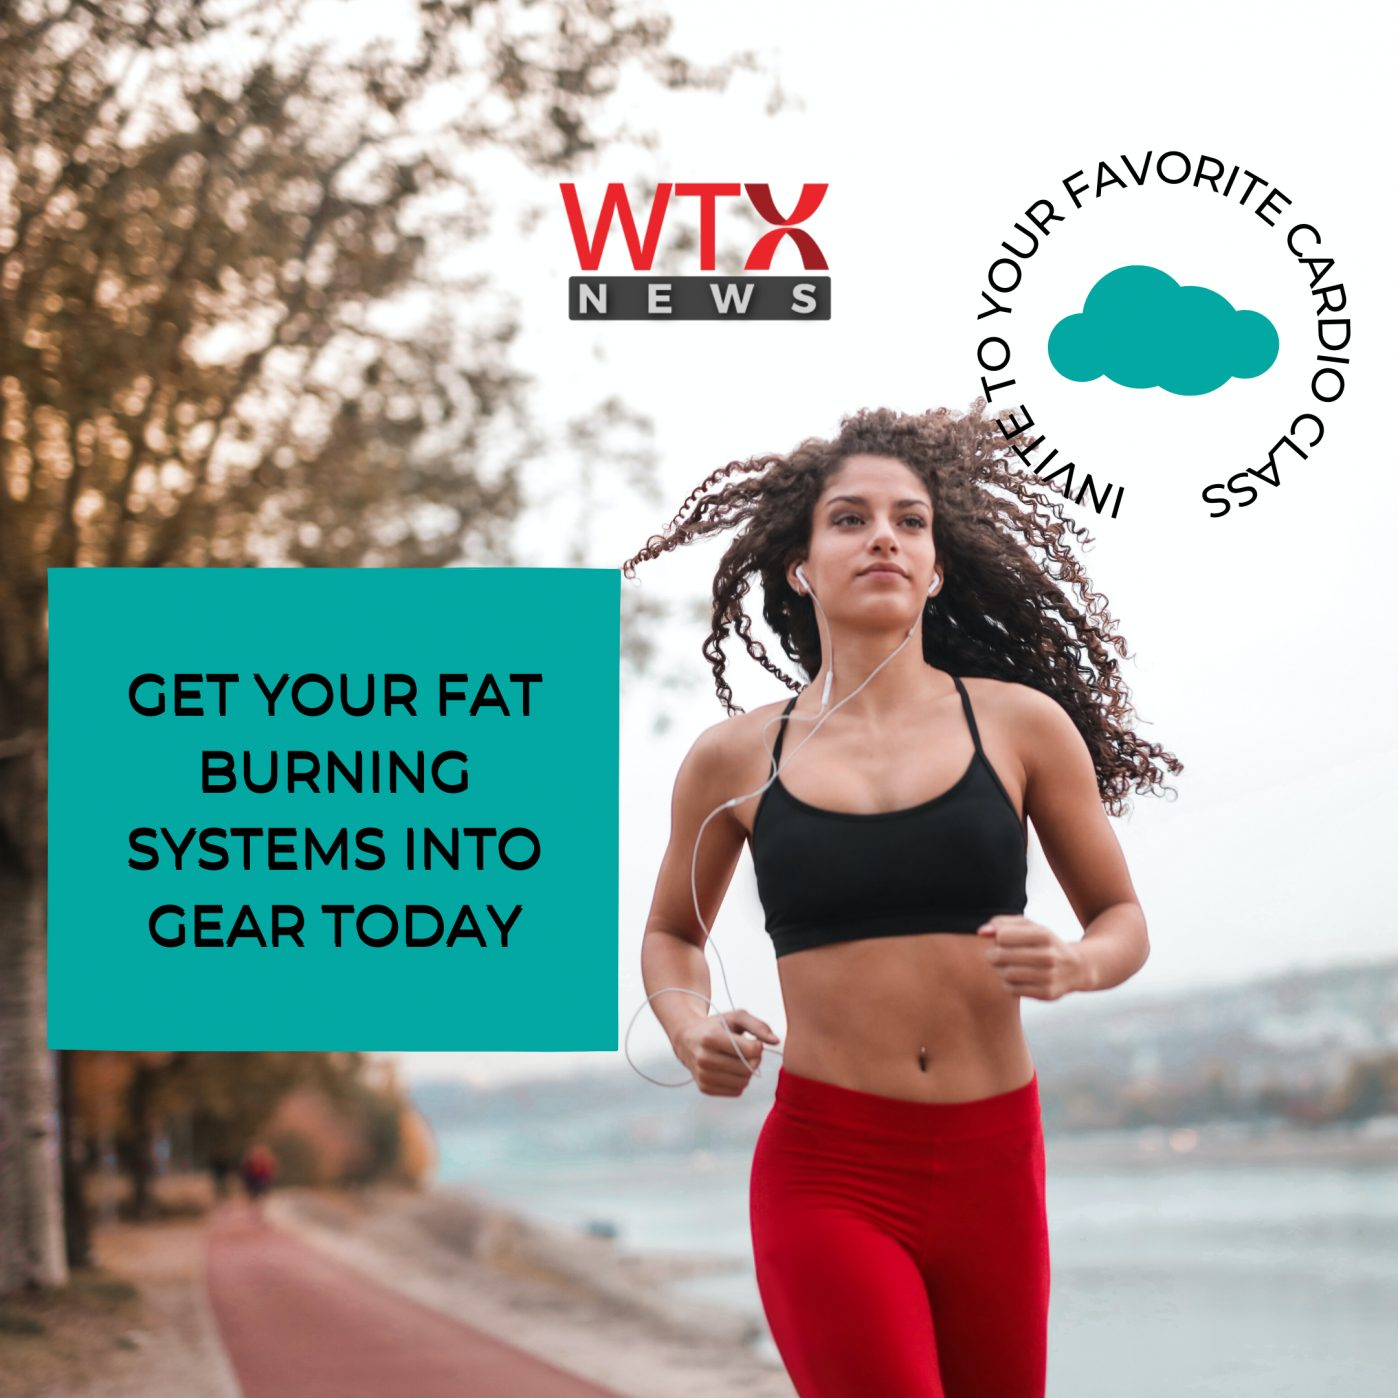 Fat Burning - WTX News Breaking News, fashion & Culture from around the World - Daily News Briefings -Finance, Business, Politics & Sports